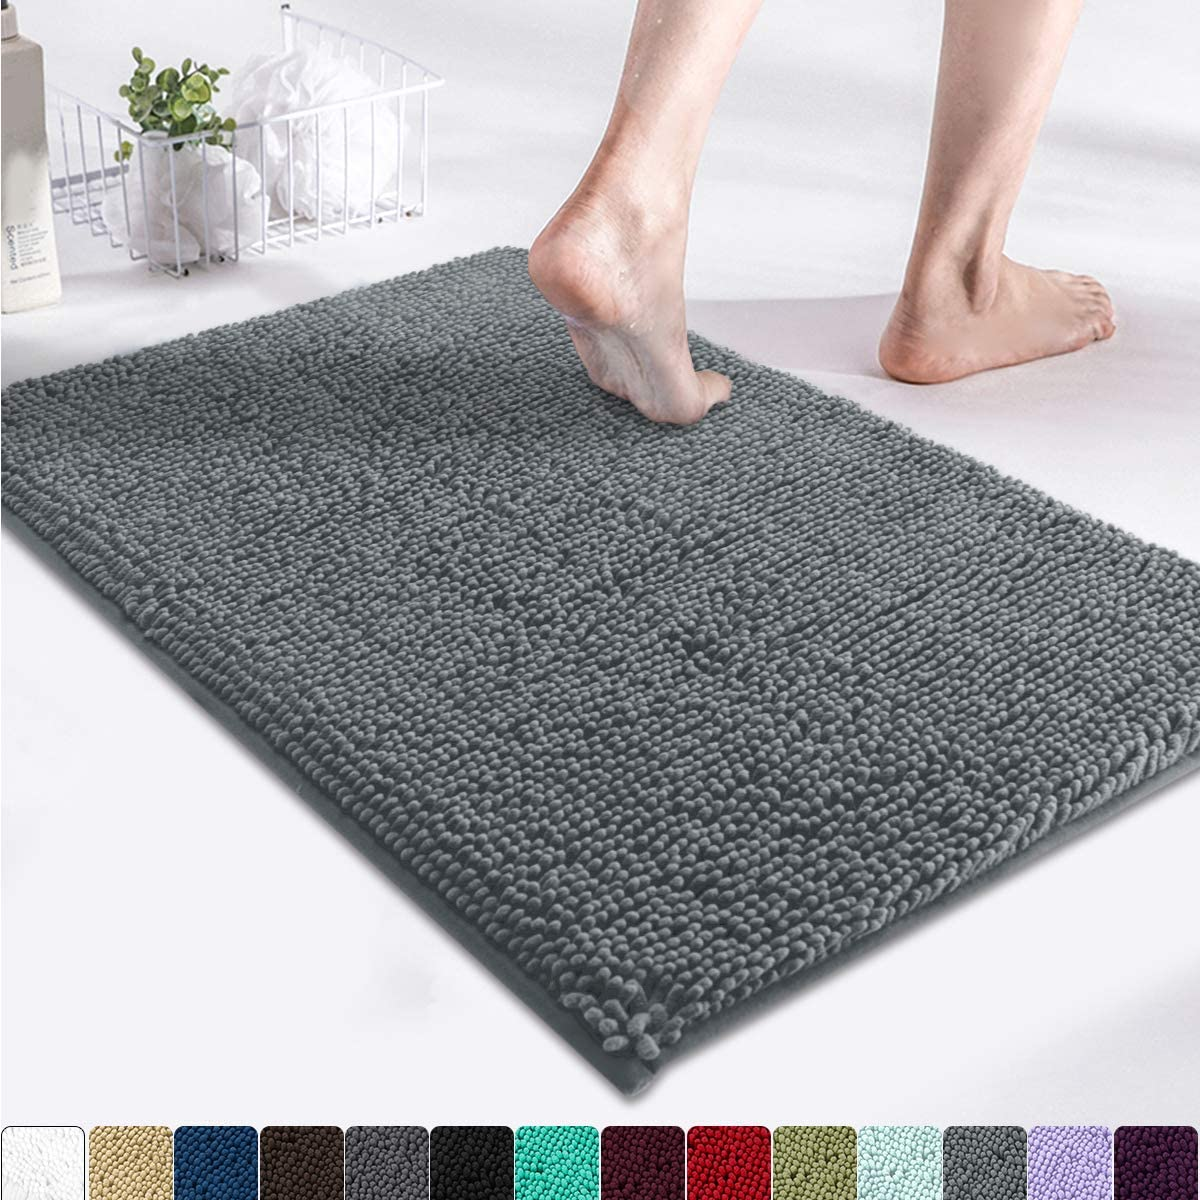 MAYSHINE Luxury Non Slip Chenille Bathroom Rug Shag Shower Mat(17x24 Inches) Machine Washable Bath Mats with Water Absorbent Soft Microfibers of Gray